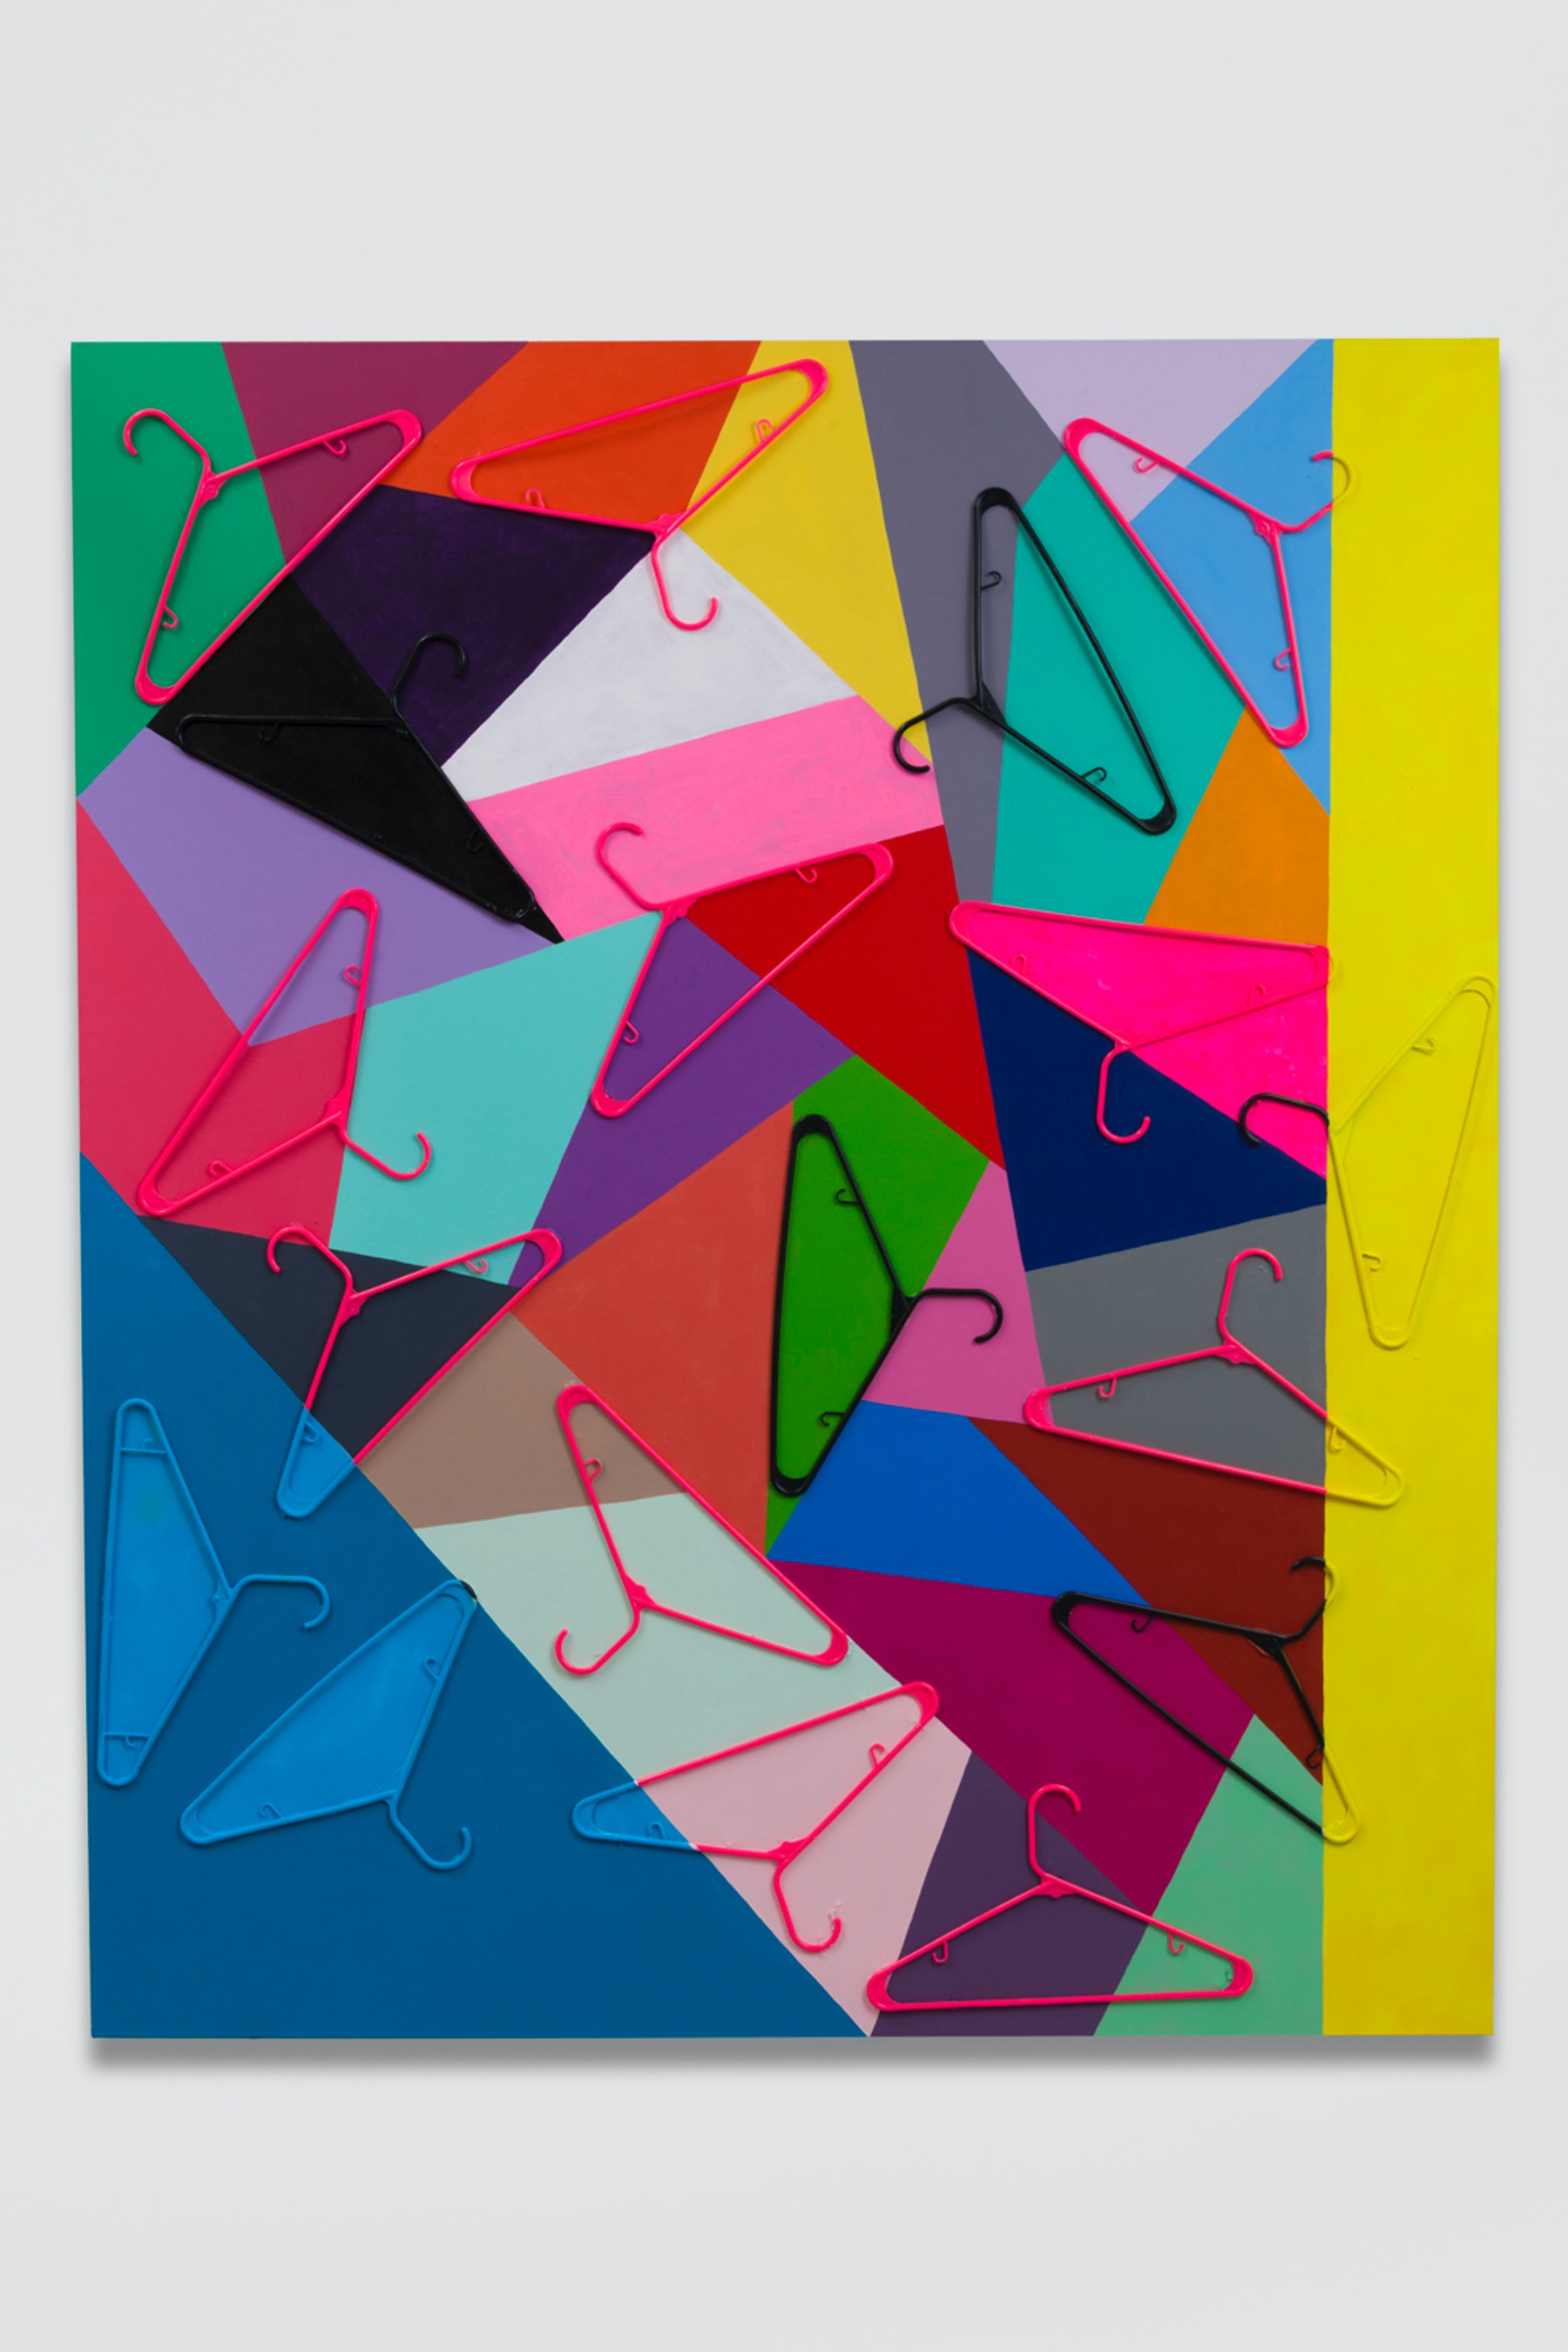 """Sarah Cain """"keep it safe and legal,"""" 2018 Acrylic, gouache, and plastic hangers on canvas 72 x 60"""" [HxW] (182.88 x 152.4 cm) Inventory #CAS109 Courtesy of the artist and Vielmetter Los Angeles"""